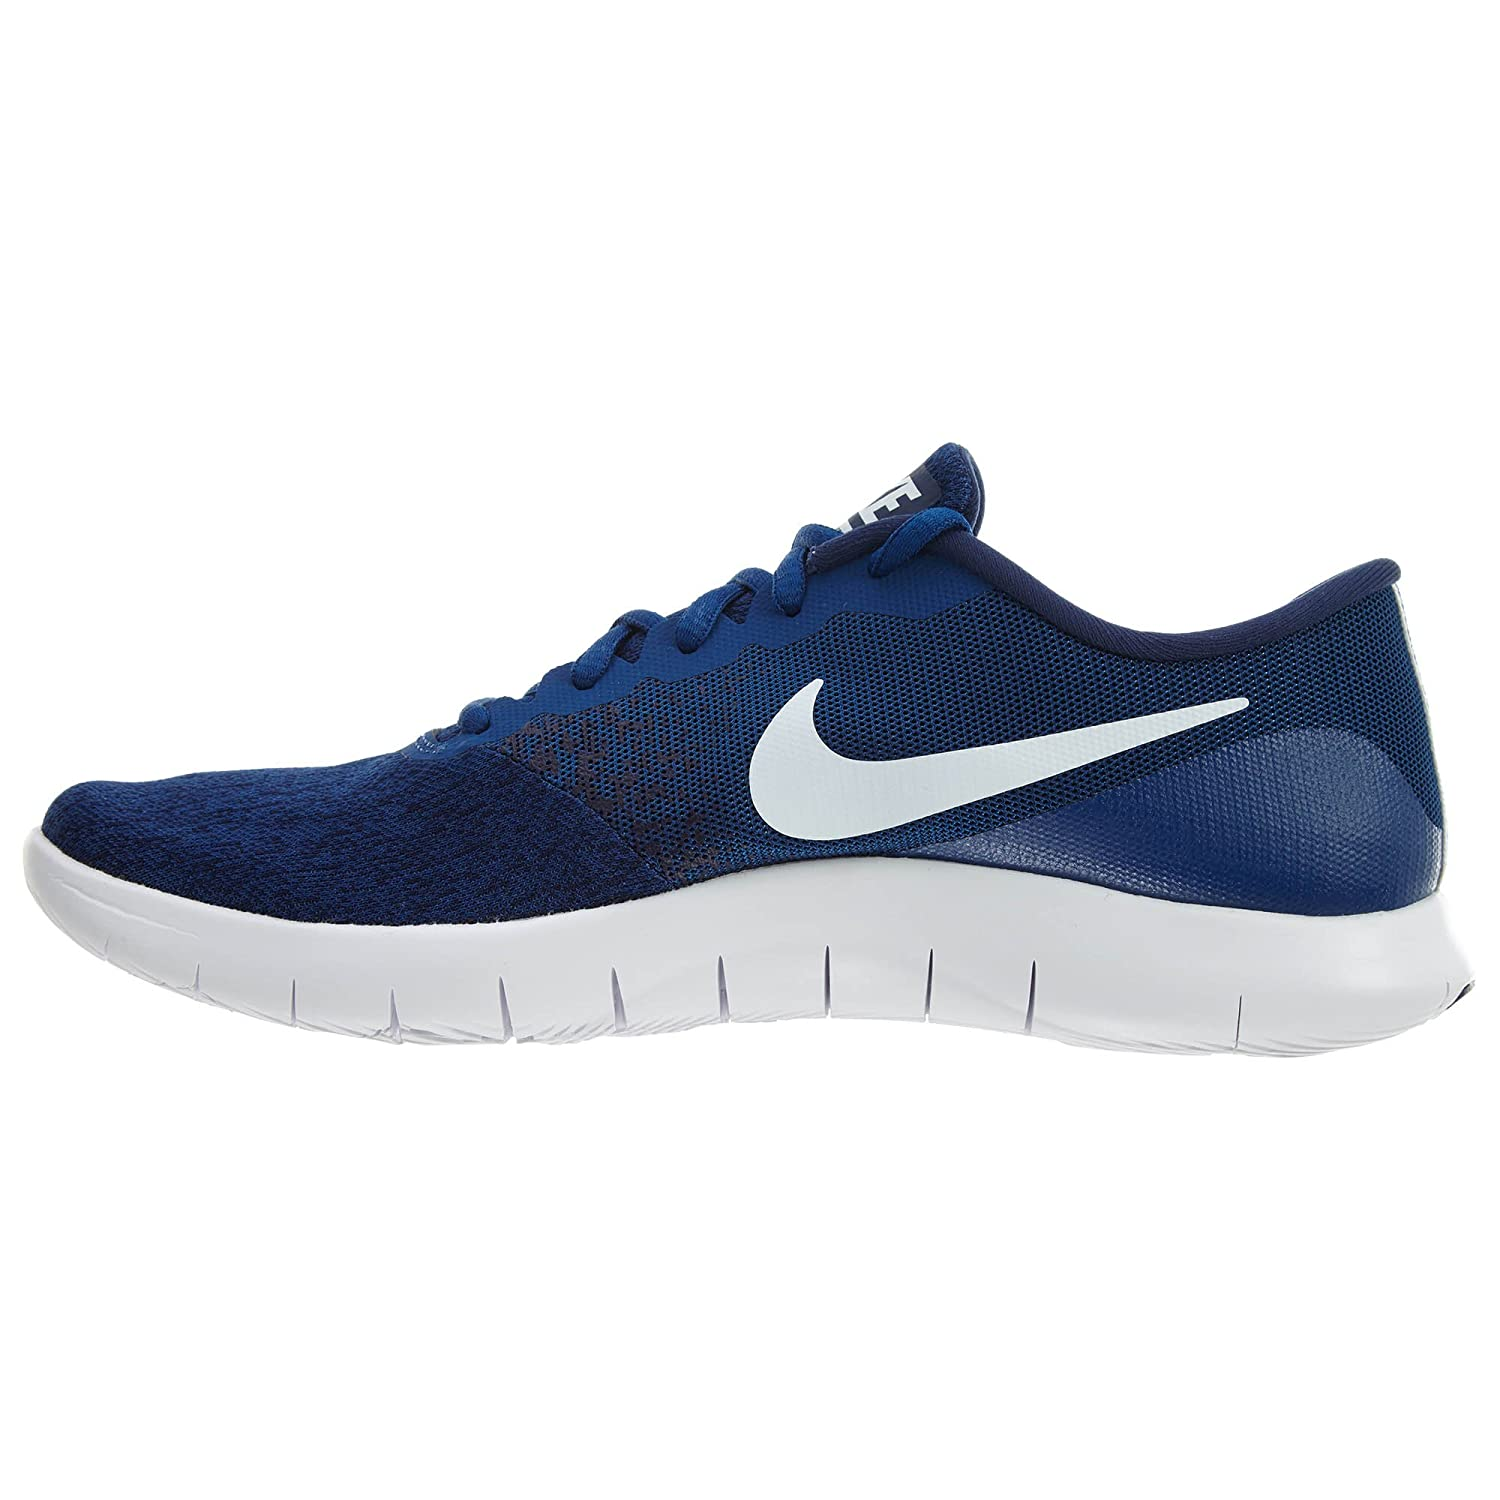 NIKE Herren Flex Gym Contact Laufschuhe, Schwarz, UK Gym Flex Blue/White-binary Blue 24ddf4